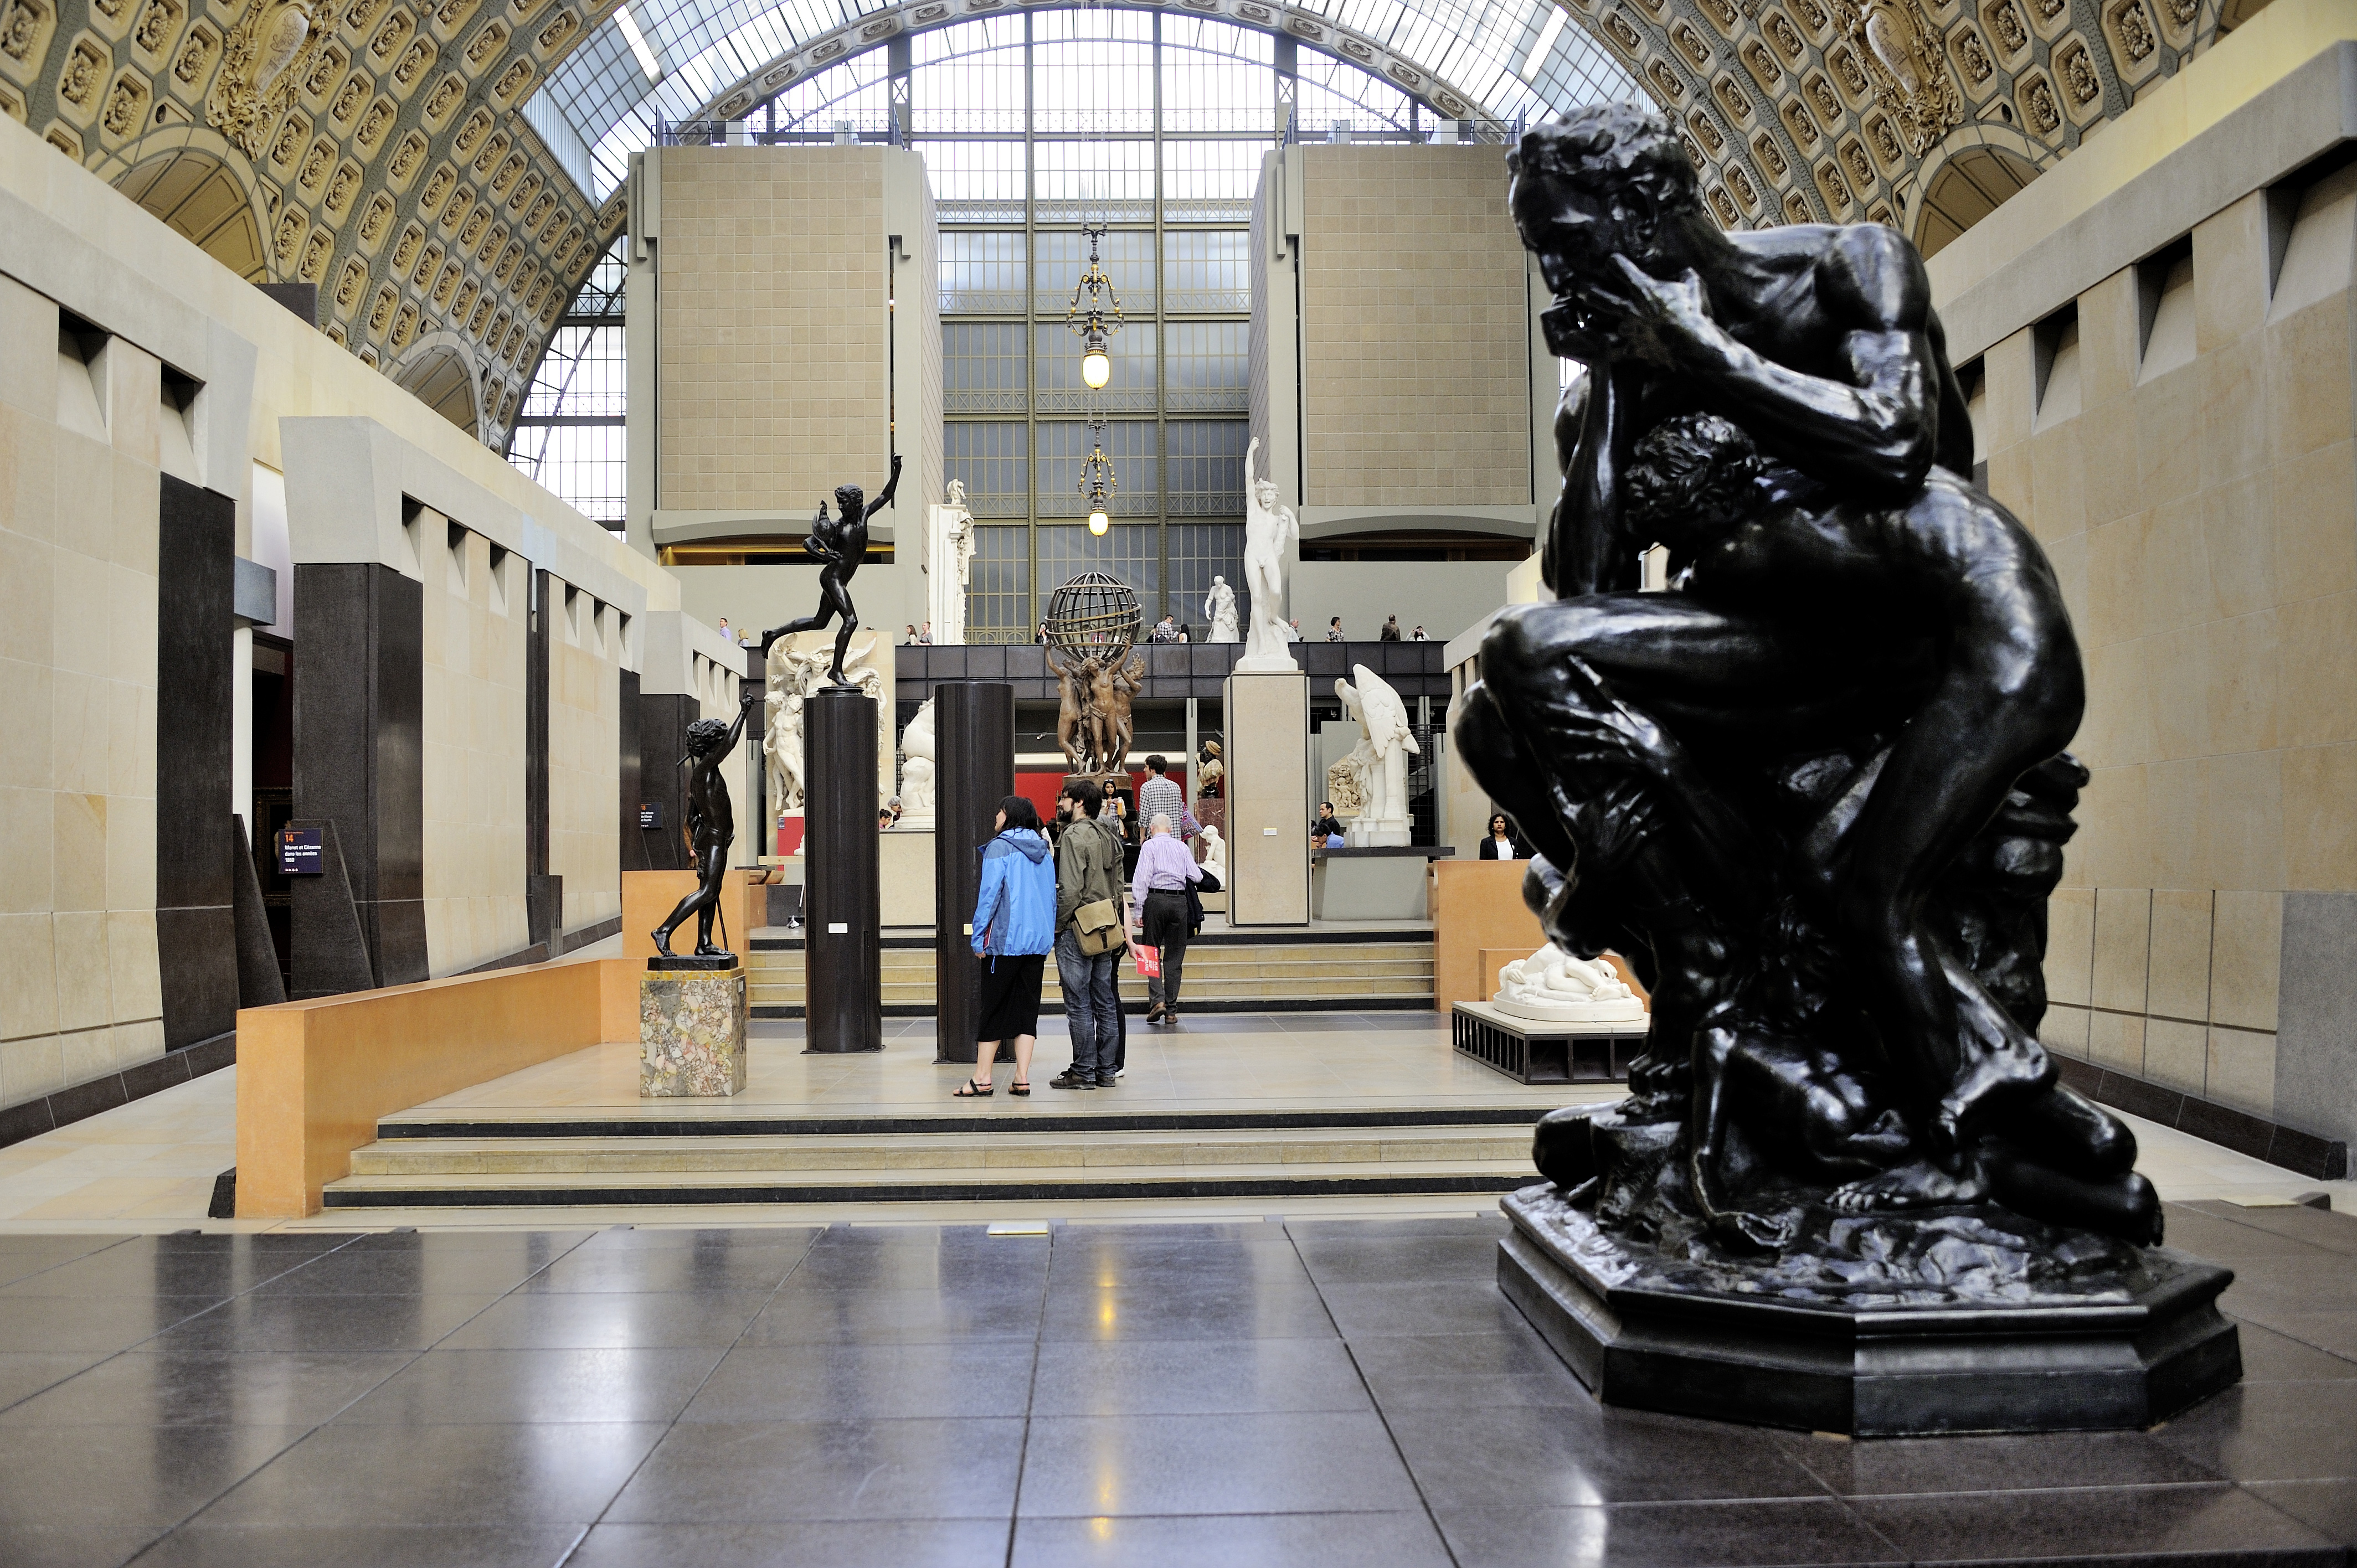 Musée d'Orsay%252C sculpture de Rodin en 1er plan%252C Paris 2015. Jarry-Tripelon %252F CRT Paris Ile-de-France